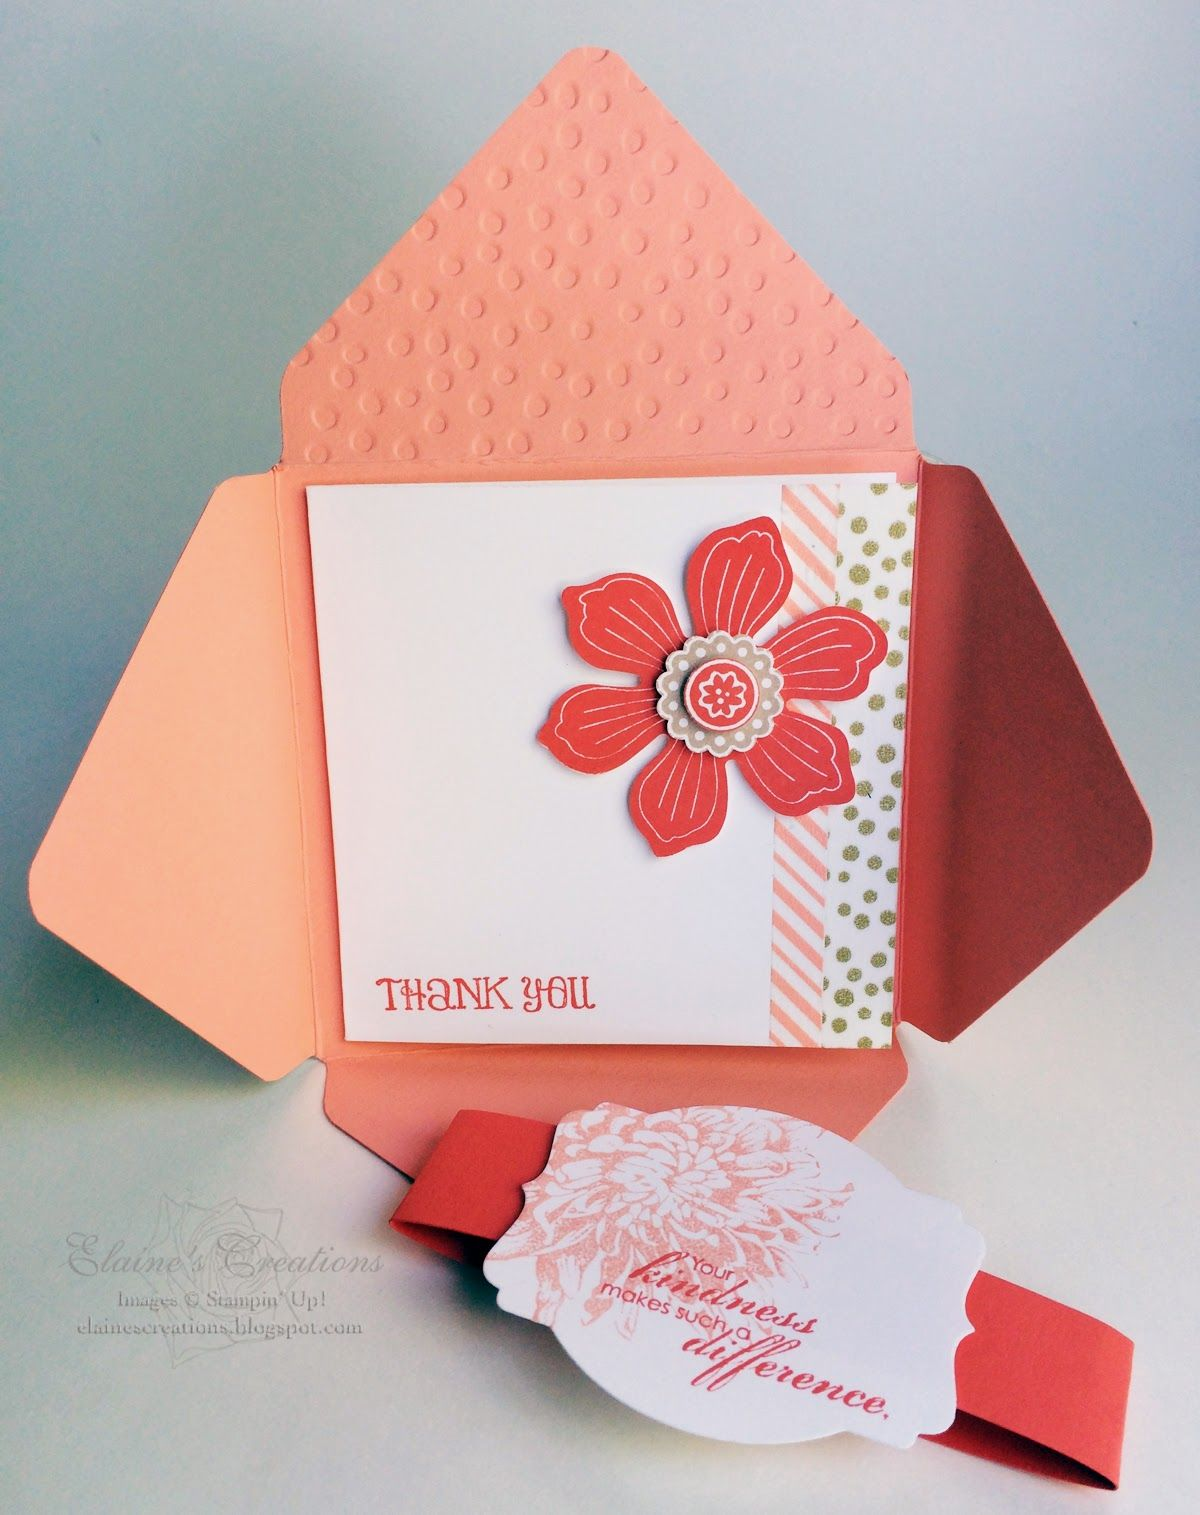 Stampinu up card making scrapbooking and paper crafting in san